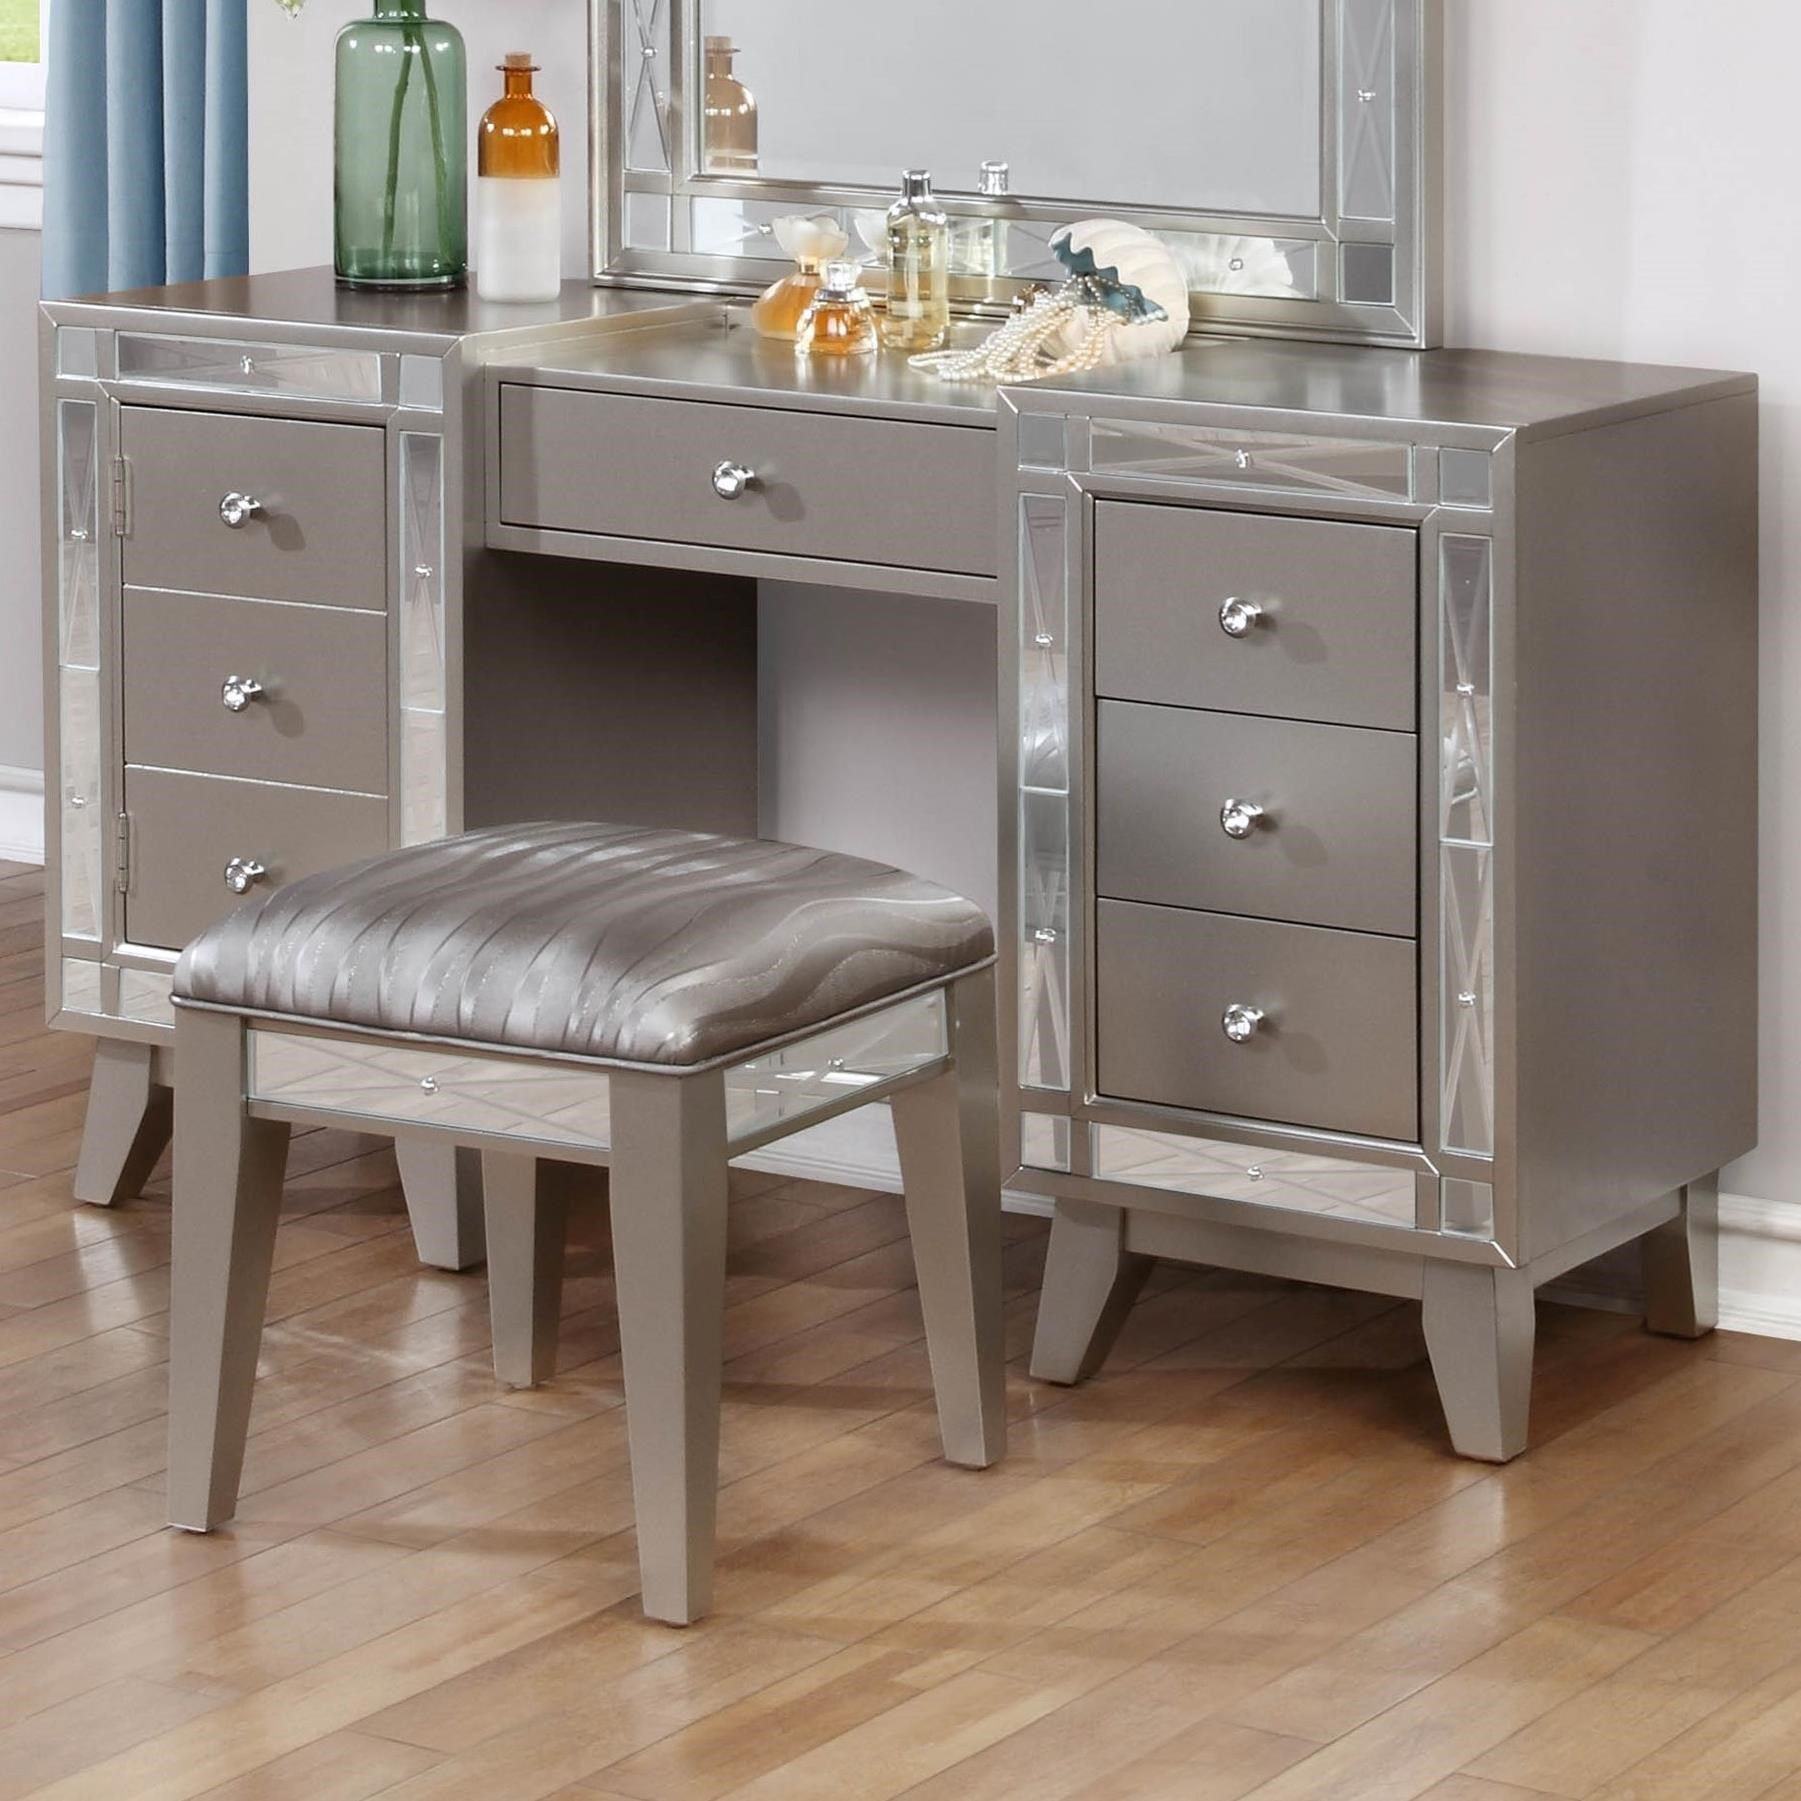 Vanity And Stool Sets Coaster Leighton 204927 Vanity Desk And Stool Del Sol